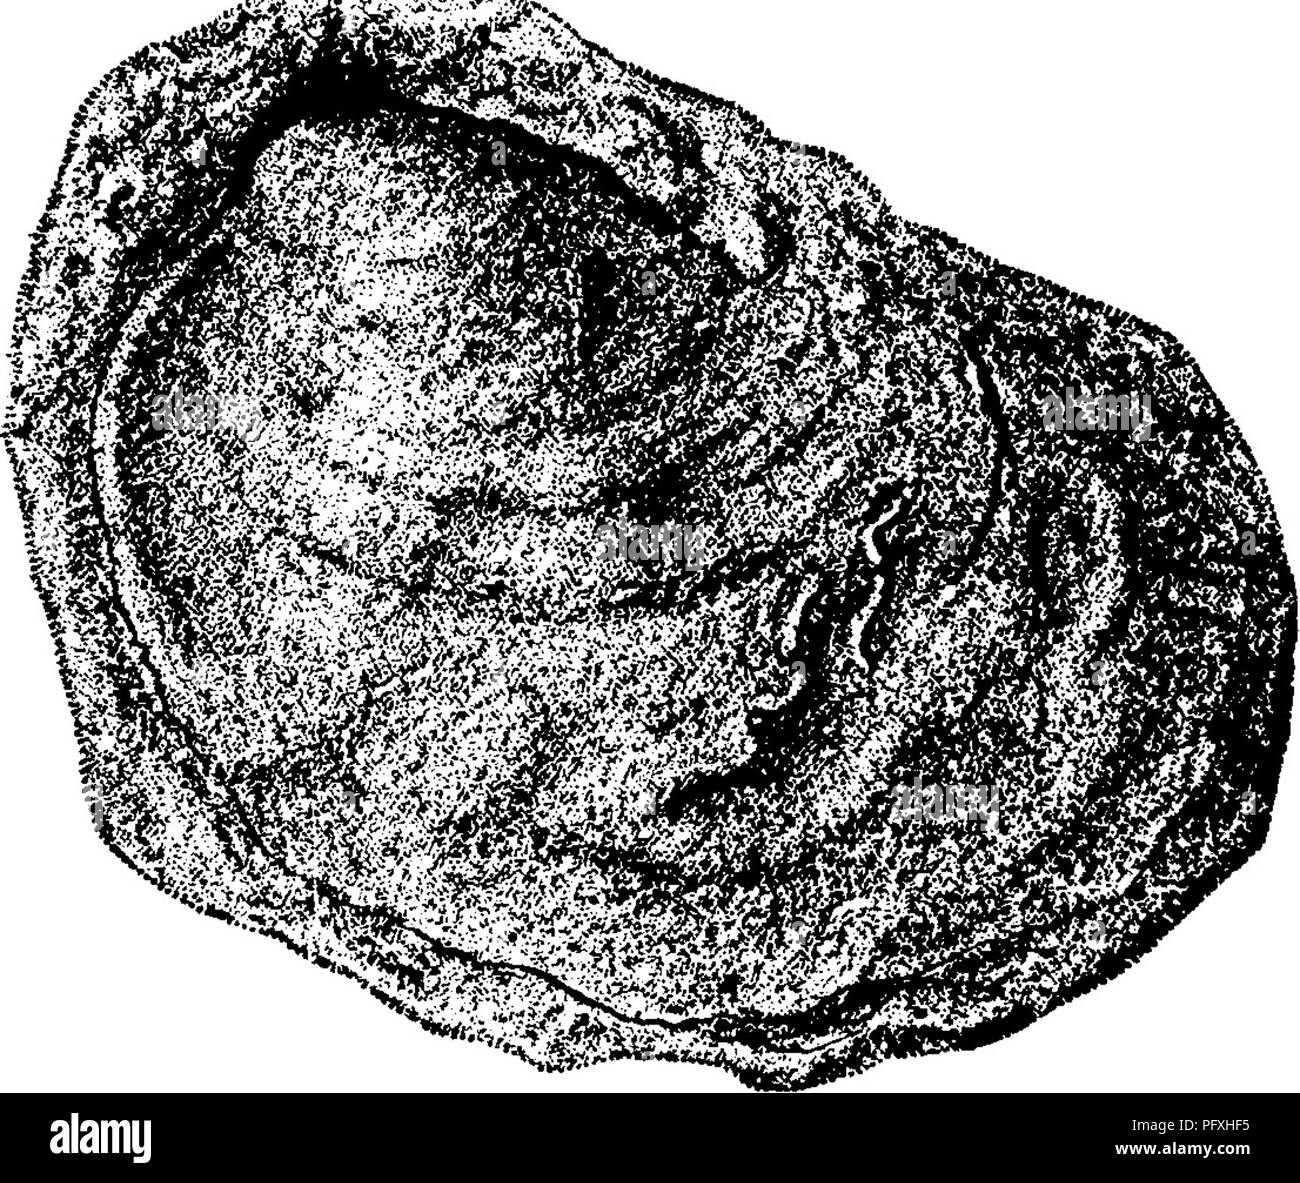 . A dictionary of the fossils of Pennsylvania and neighboring states named in the reports and catalogues of the survey ... Paleontology. 263 Gram. â â â¢Vw-^ Grammysia ? in vast numbers in spots in the Orishany Sand Ridge at Mapleton, Huntingdon Co. and elsewhere. (T3, p. 119, 274.)âF//. Grammysia ? numerous in Hamilton middle sandstone, in Huntingdon Co. (T, p. 32), and Hamilton upper sandstone at the end of Jack's mountain, (T3, 111); and also in Pike and Monroe Cos. (G6, 230) as at MarshalFs falls.âF//7c. Gramm^ysia ? in the middle layers of the Trough Creek limestone^ Huntingdon Co., Pa.,  - Stock Image